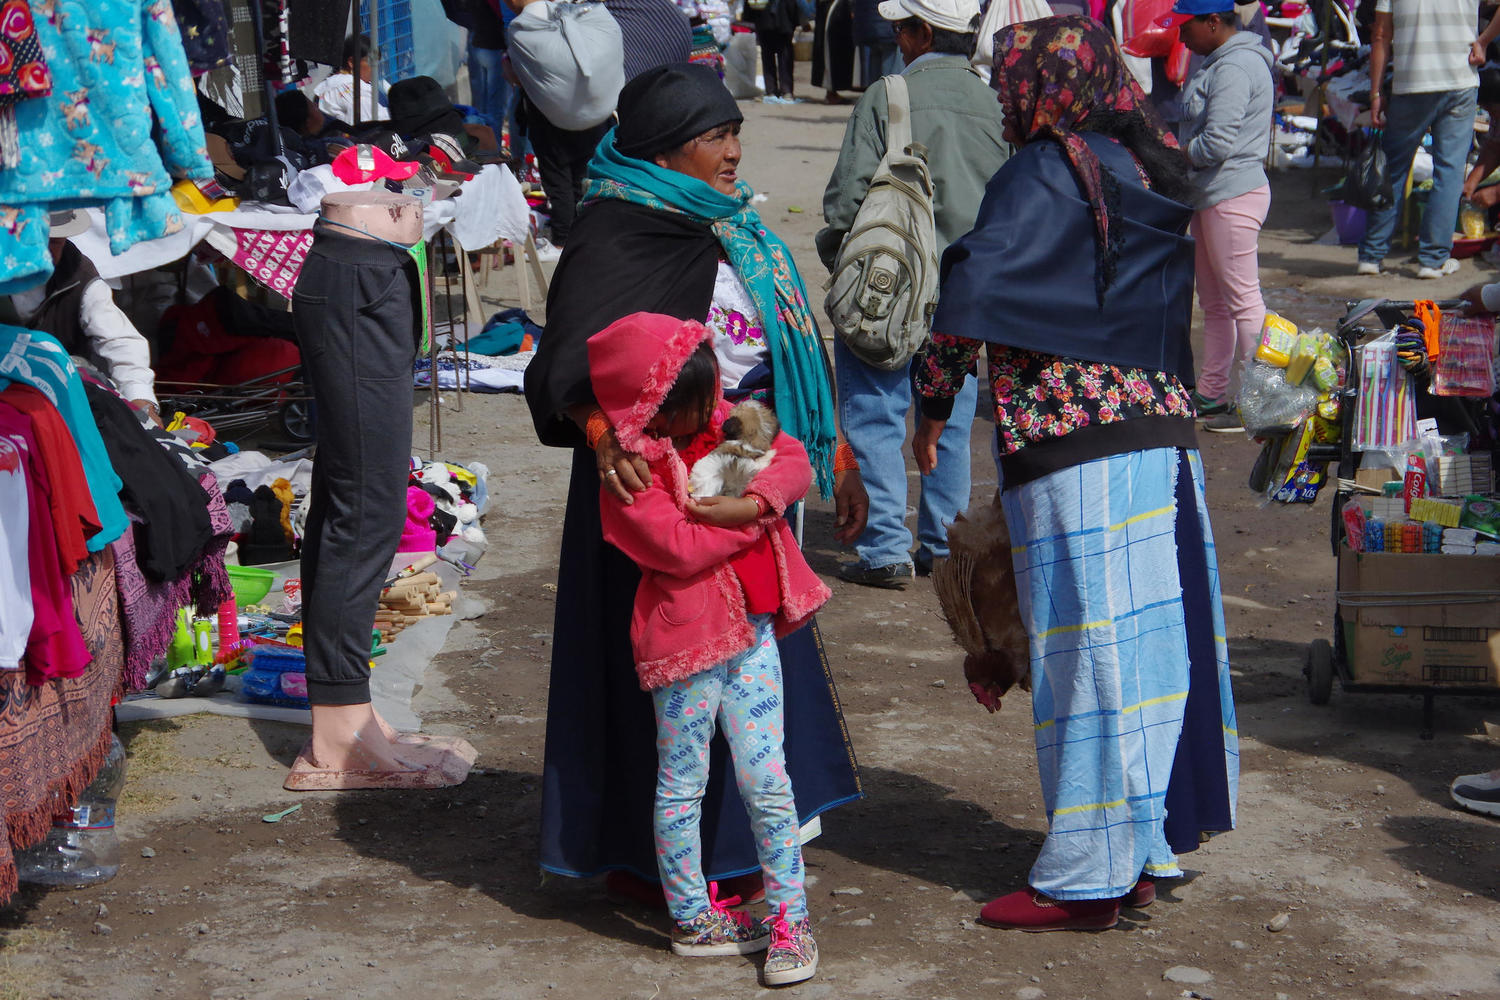 Locals catching up at the Otavalo Market